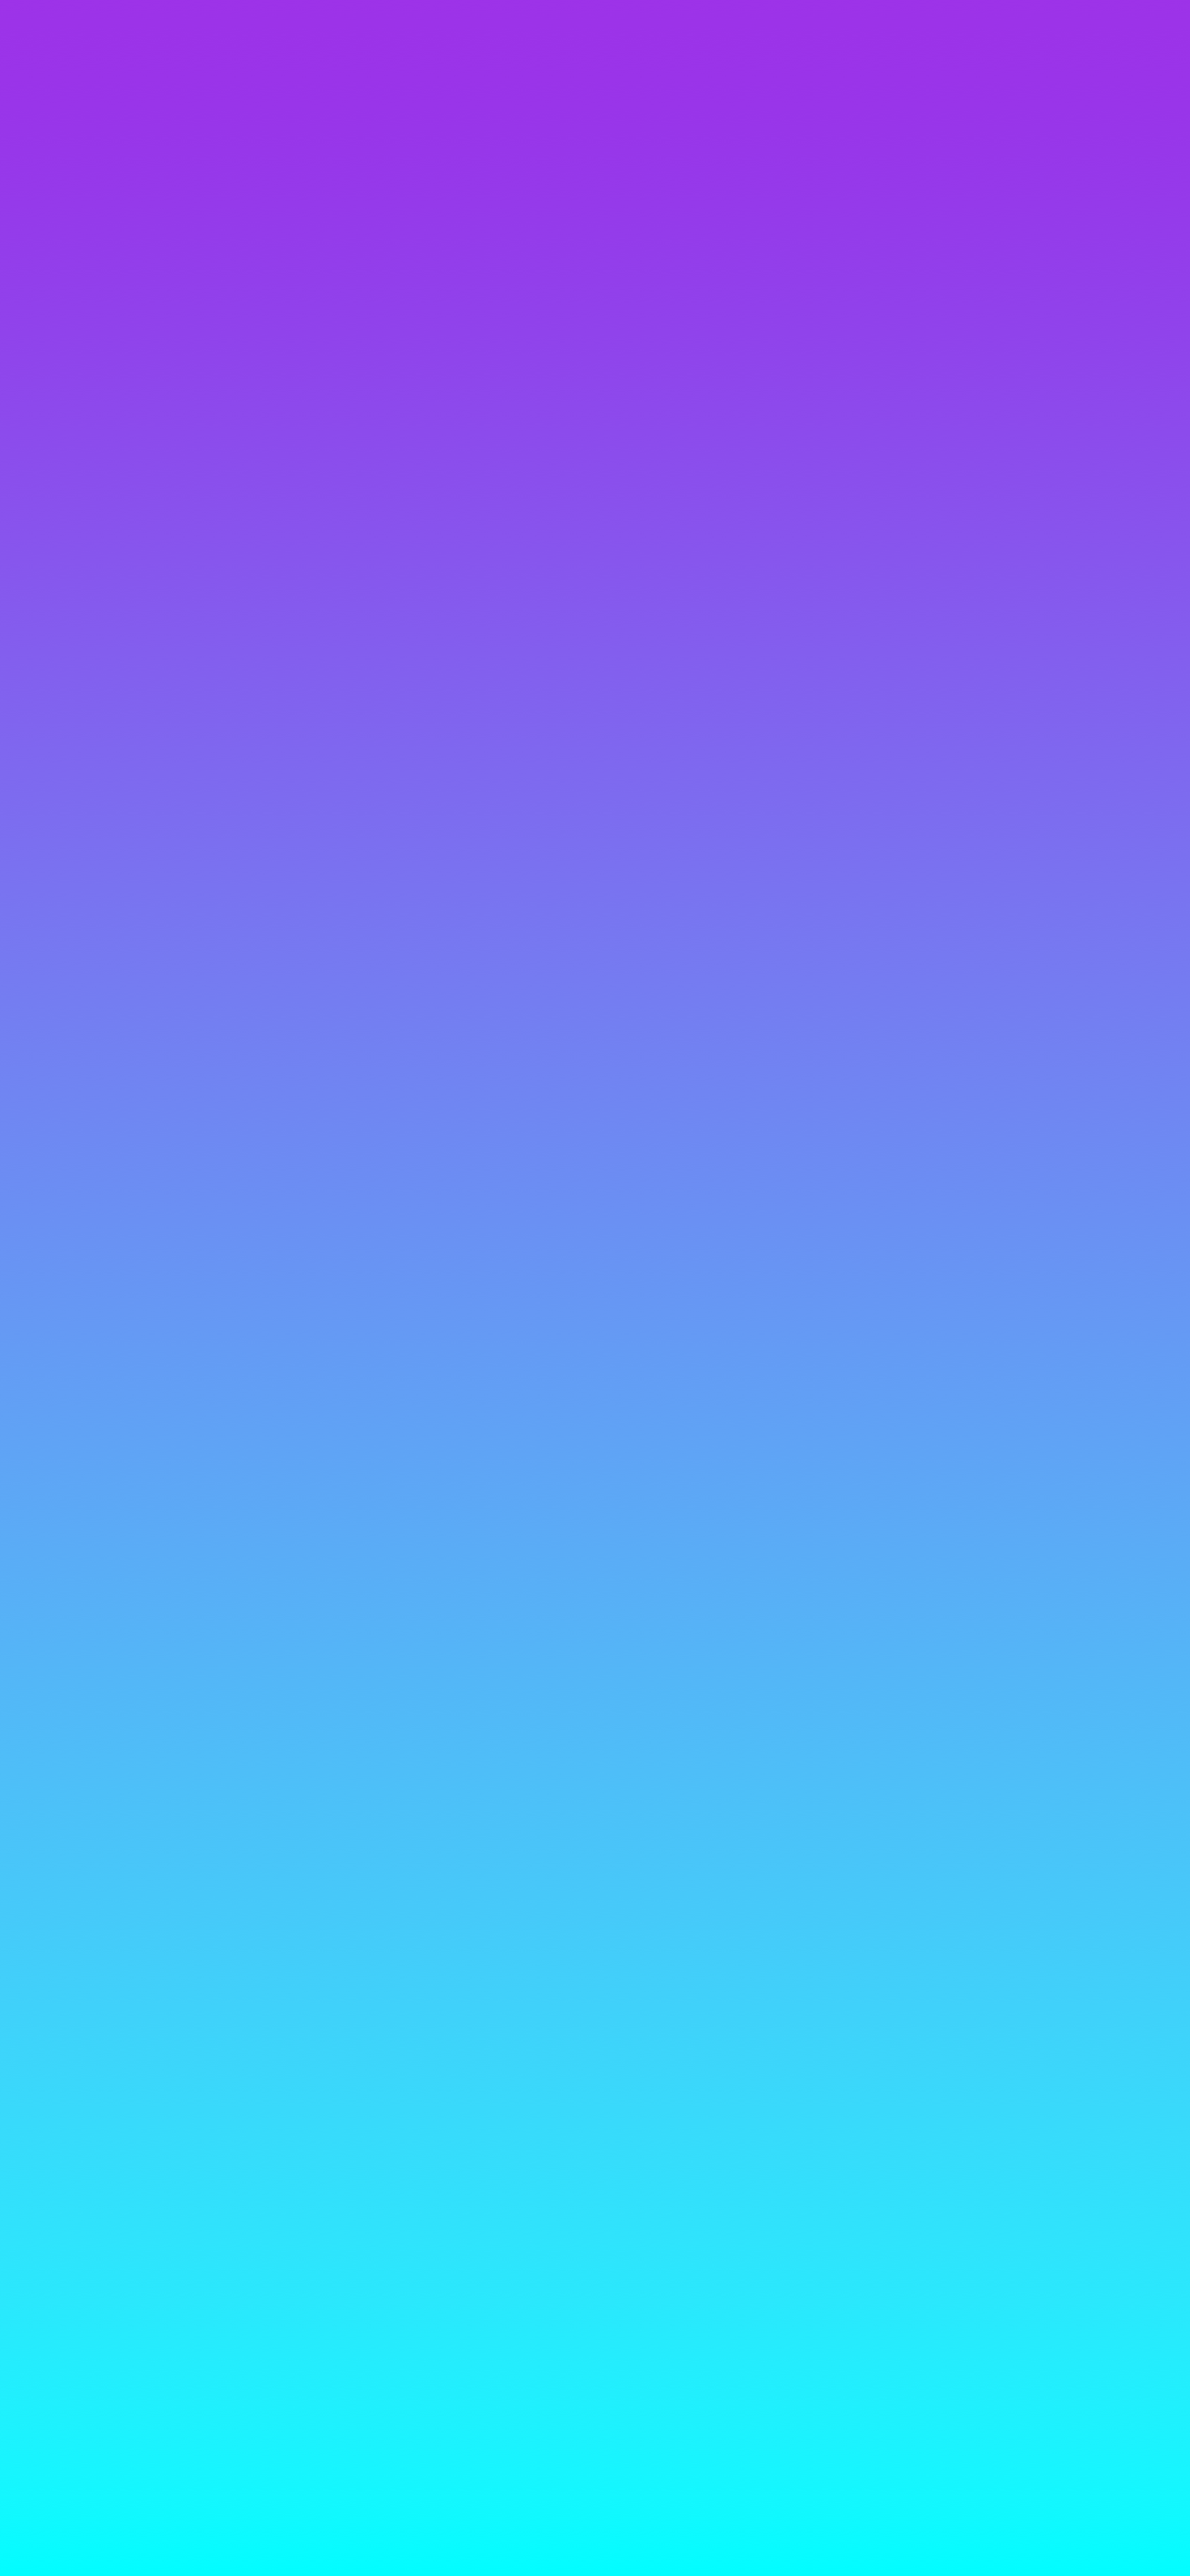 Gradient Colors Wallpaper For Iphone X 8 7 6 Free